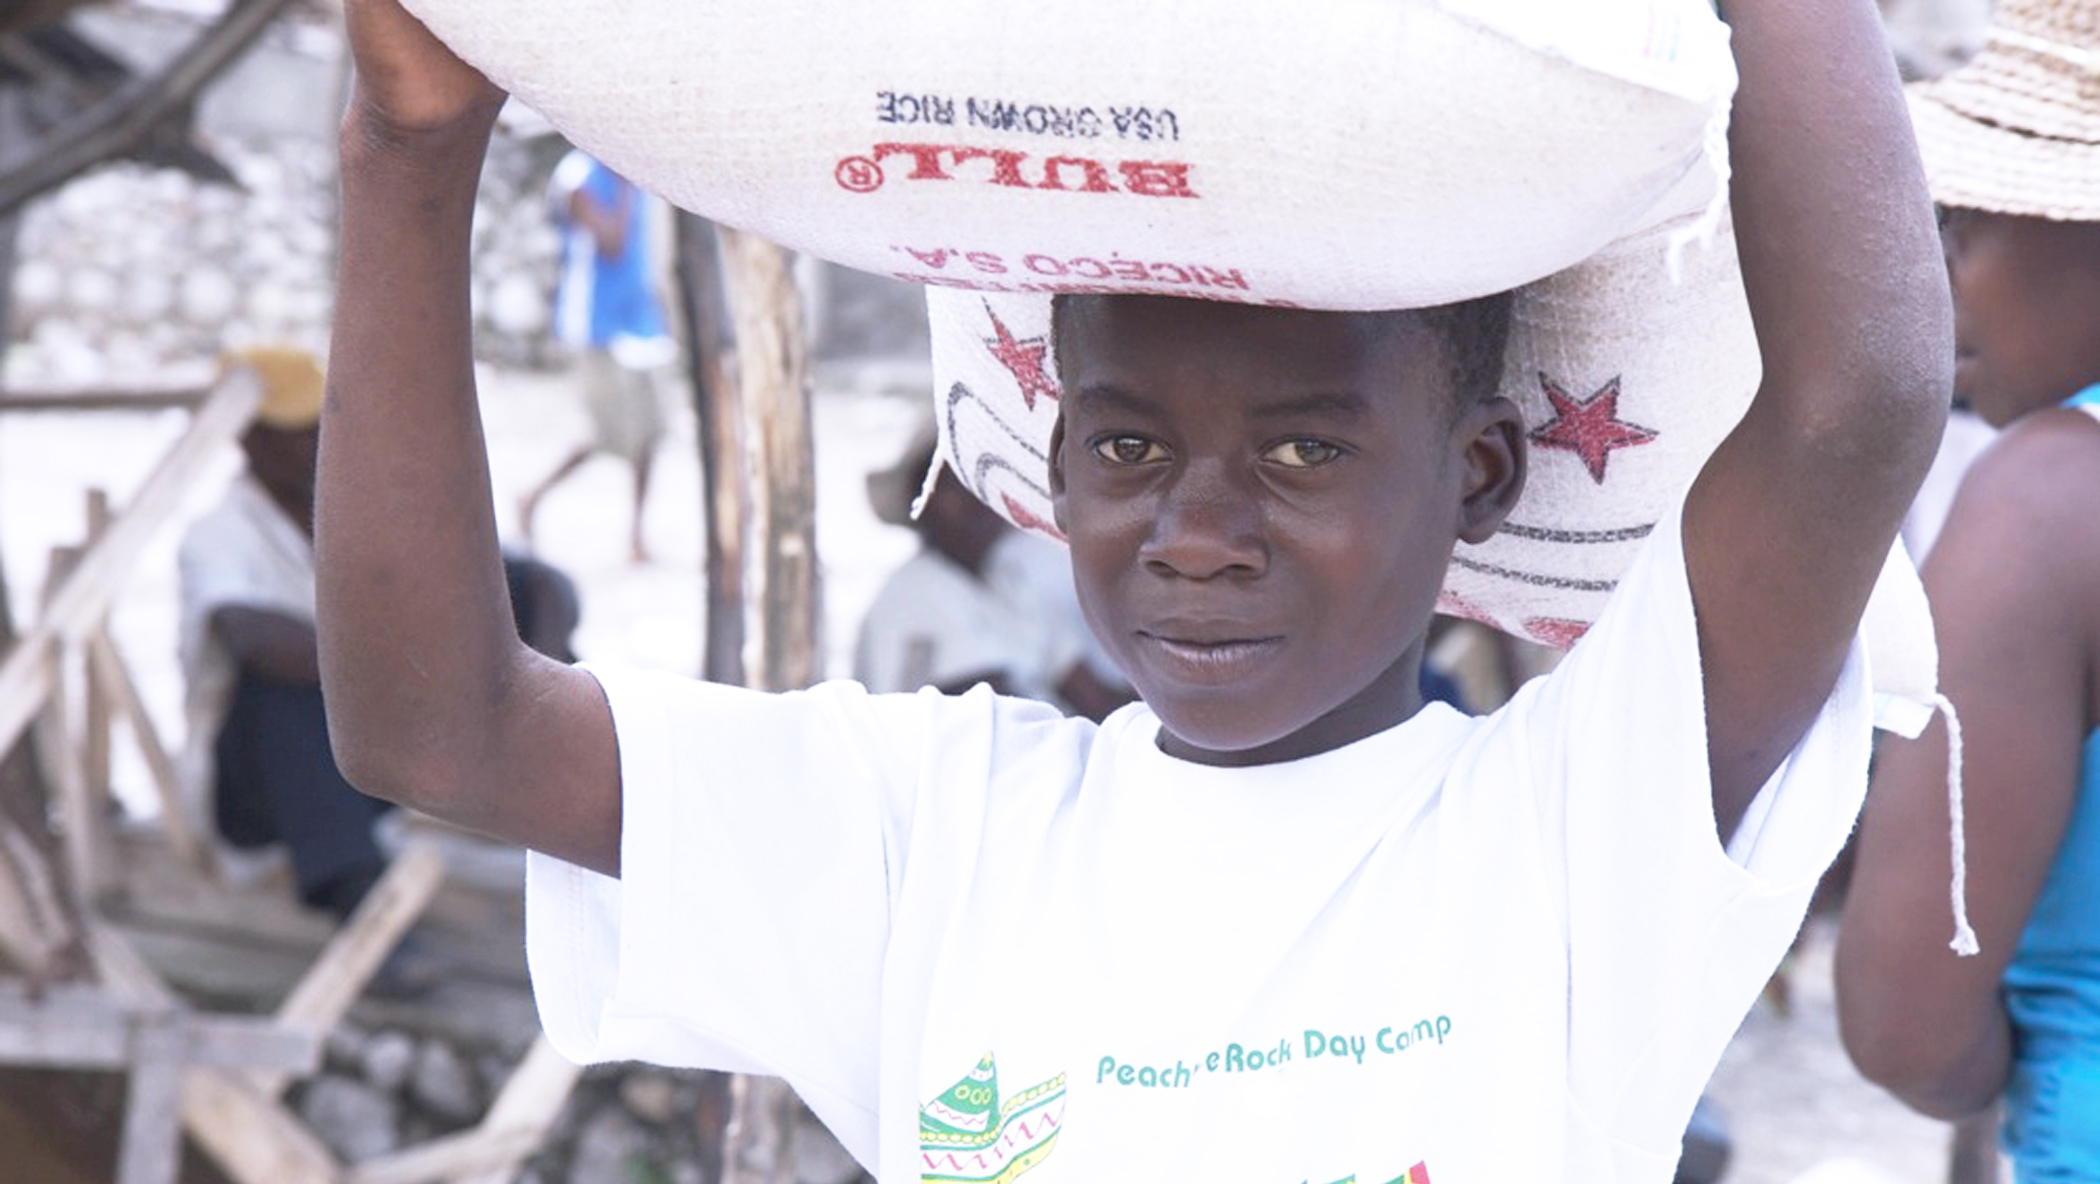 A member of MP3K carries a large bag of rice on his head.